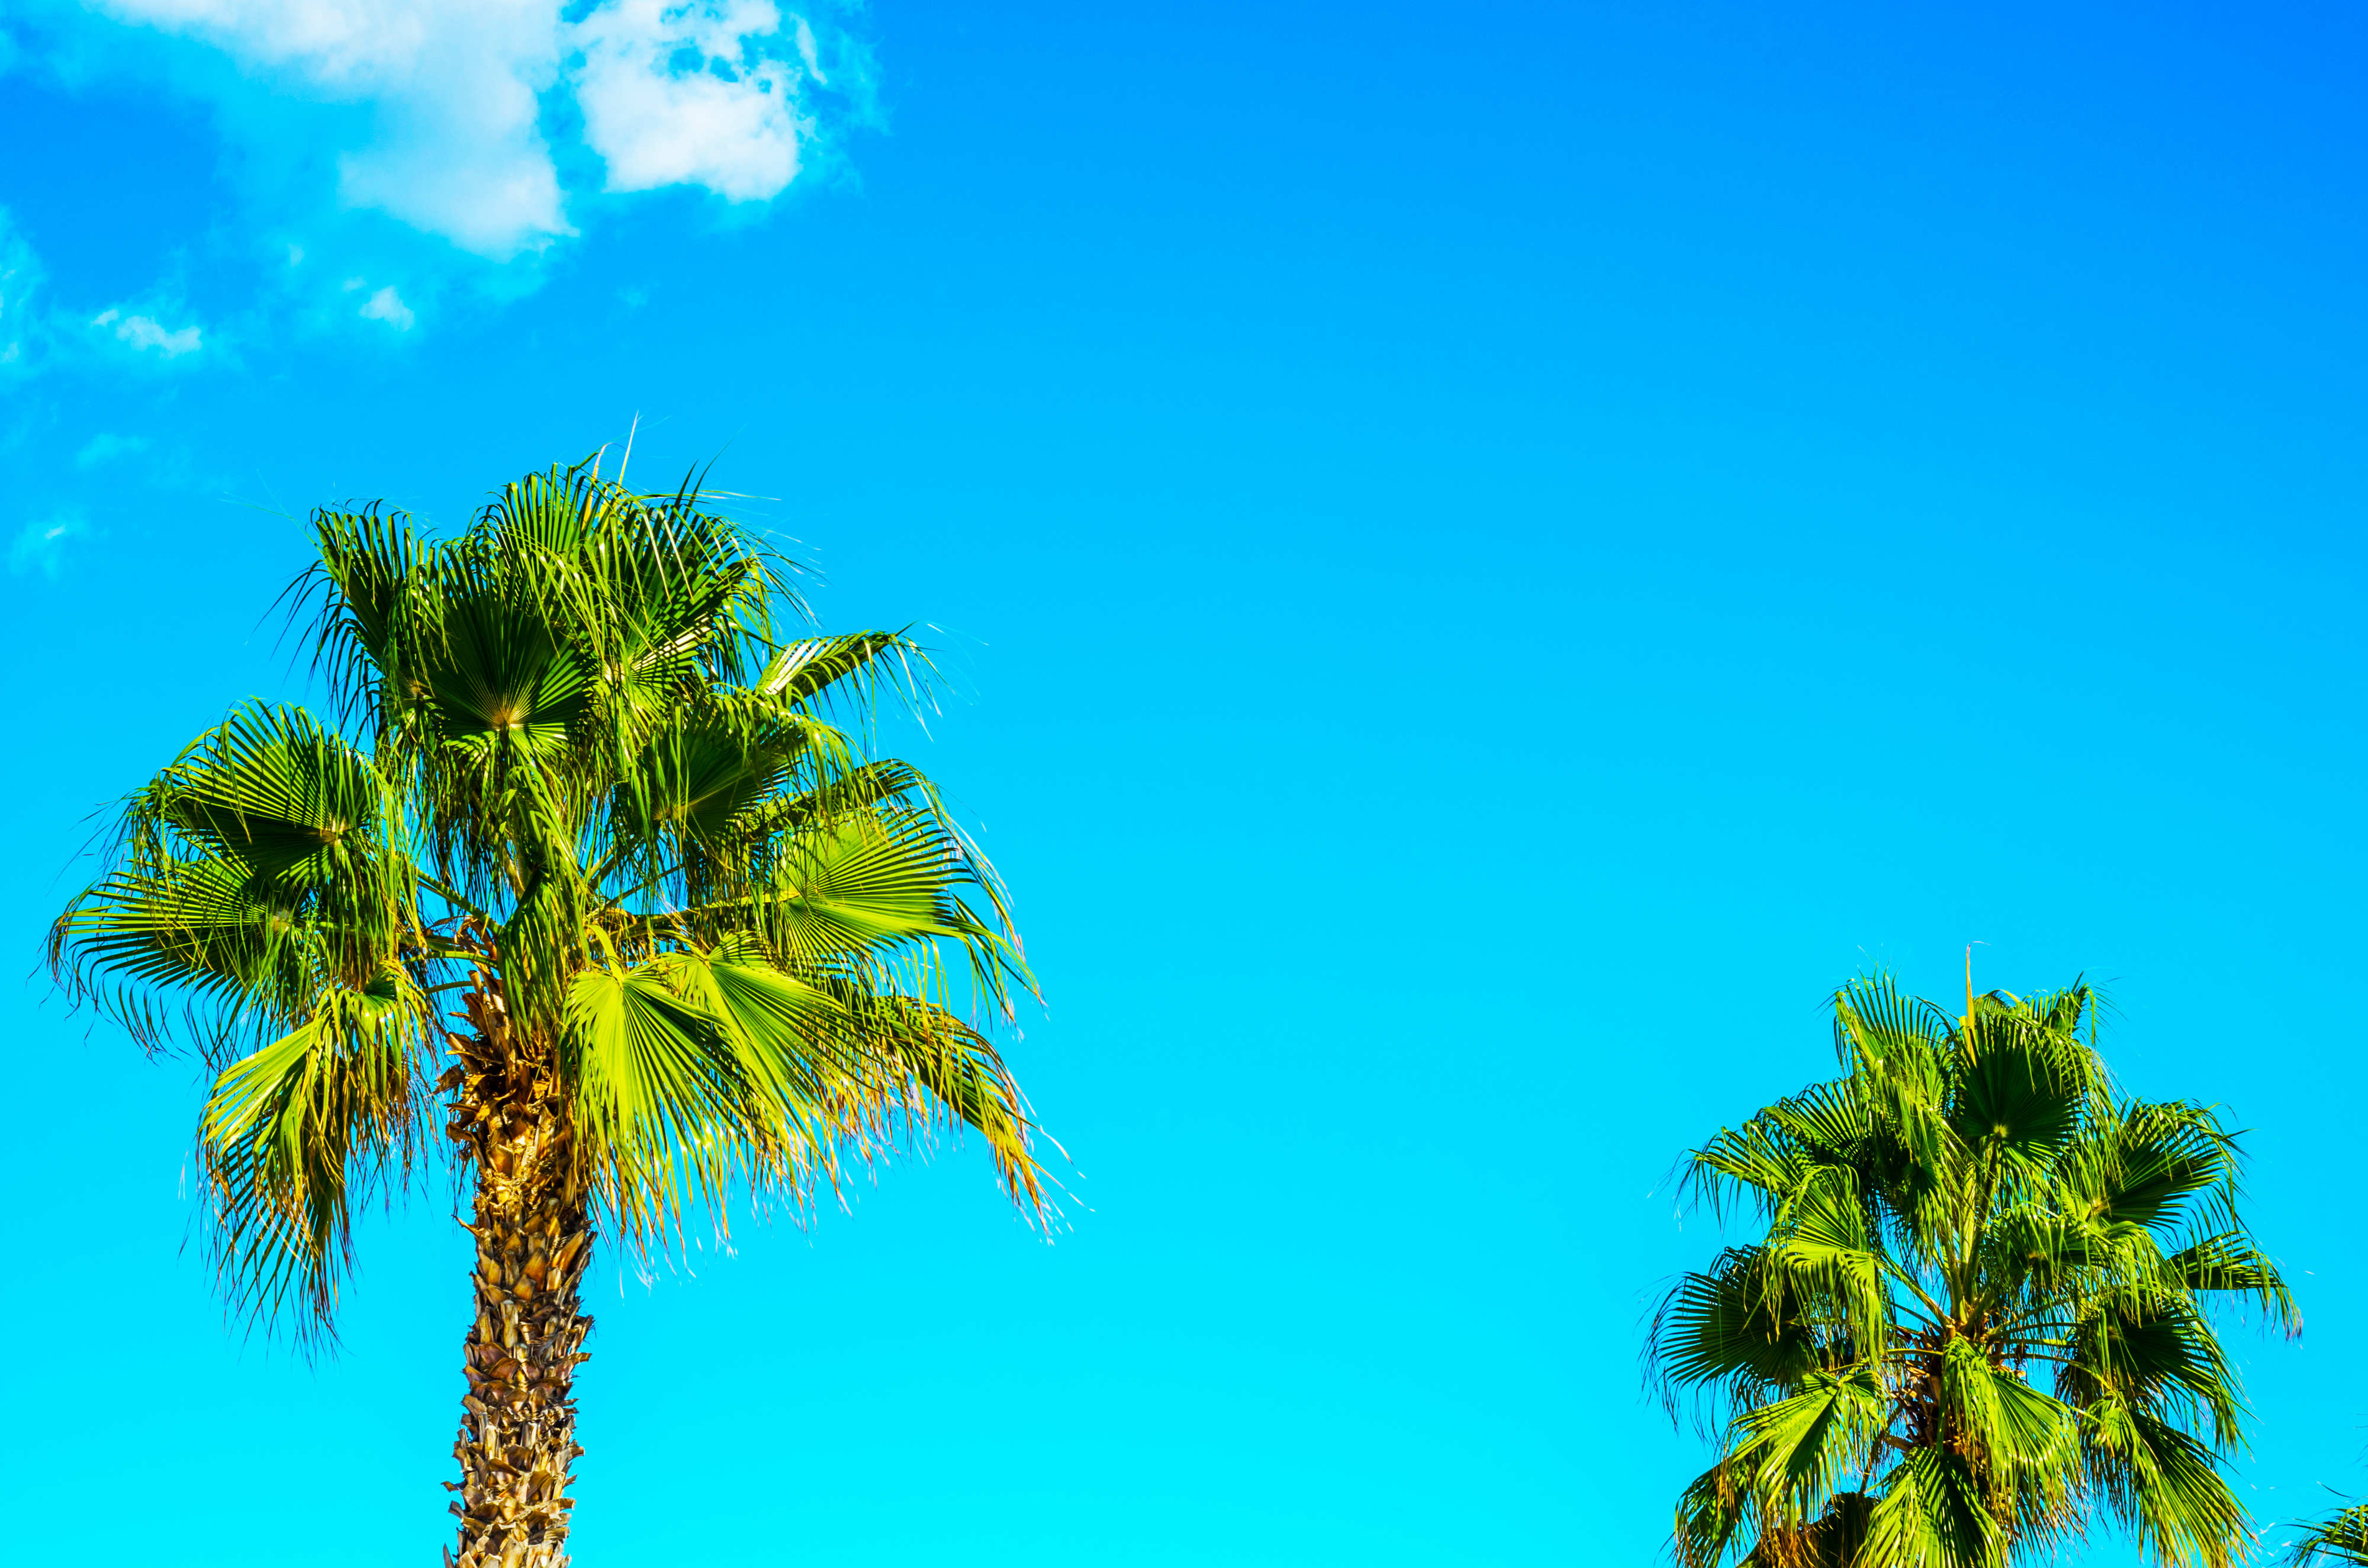 Palm trees with a clear sky